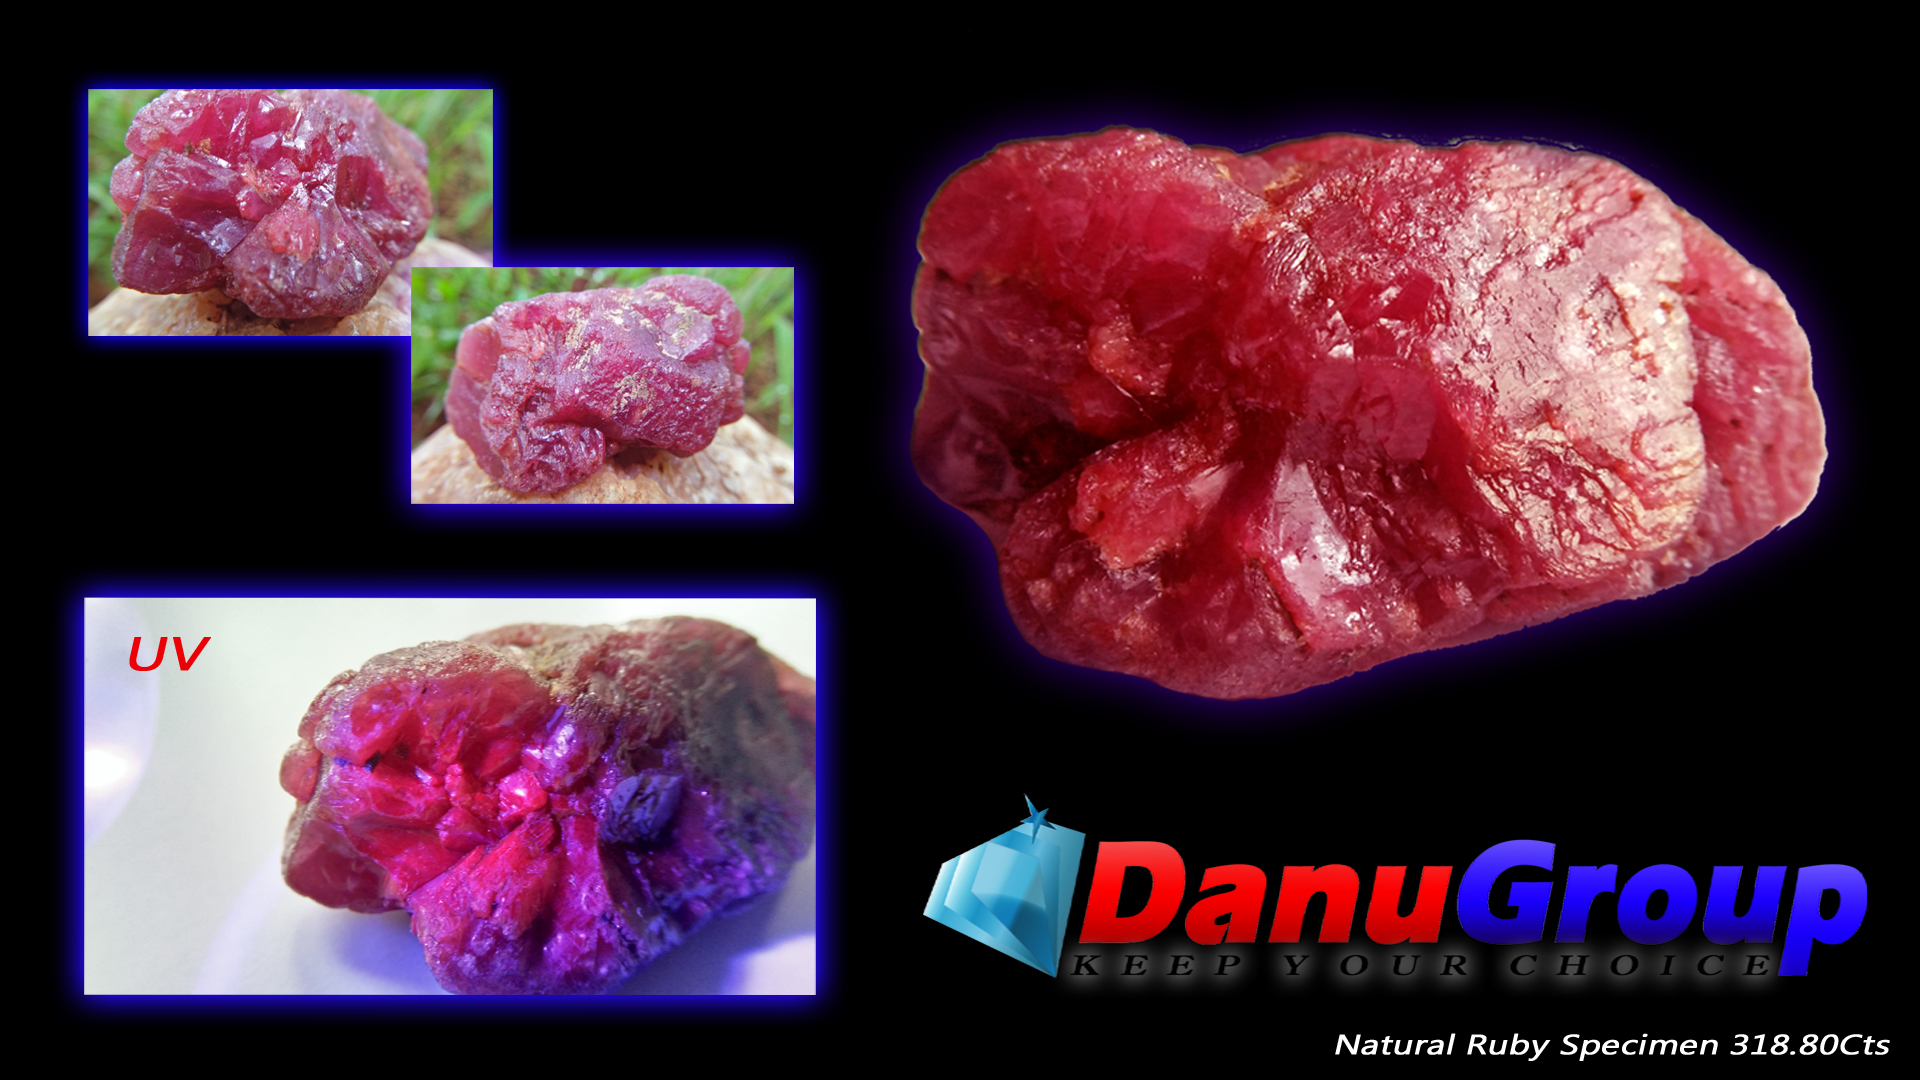 Natural Ruby specimen 318.80Cts weight, 51mm x 21mm x 30mm dimension stone A ruby is a pink to blood-red colored gemstone, a variety of the mineral corundum. Other varieties of gem-quality corundum are called sapphires. Category: Oxide mineral variety Formula: aluminium oxide withchromium, Al2O3:Cr Crystal system: Trigonal Crystal class: Hexagonal Mohs scale: hardness9.0 Luster: Subadamantine, vitreous, pearly Specific gravity: 3.97 – 4.05 Optical properties: Uniaxial - Refractive index: nω=1.768–1.772 nε=1.760–1.763 Ruby is a powerful stone to shield against negative energy, psychic attack, and energy vampirism, especially of the heart energy.Ruby is a stone of Divine creativity. It boosts your energy levels and promotes high self-esteem, intuition, and spiritual wisdom. According to astrology generally ruby should be worn in ring finger of right hand. Ruby is one of the most popular gemstones, and is used extensively in Jewelry. Ruby is used in all forms of jewelry, including bracelets, necklaces, rings, and earrings.